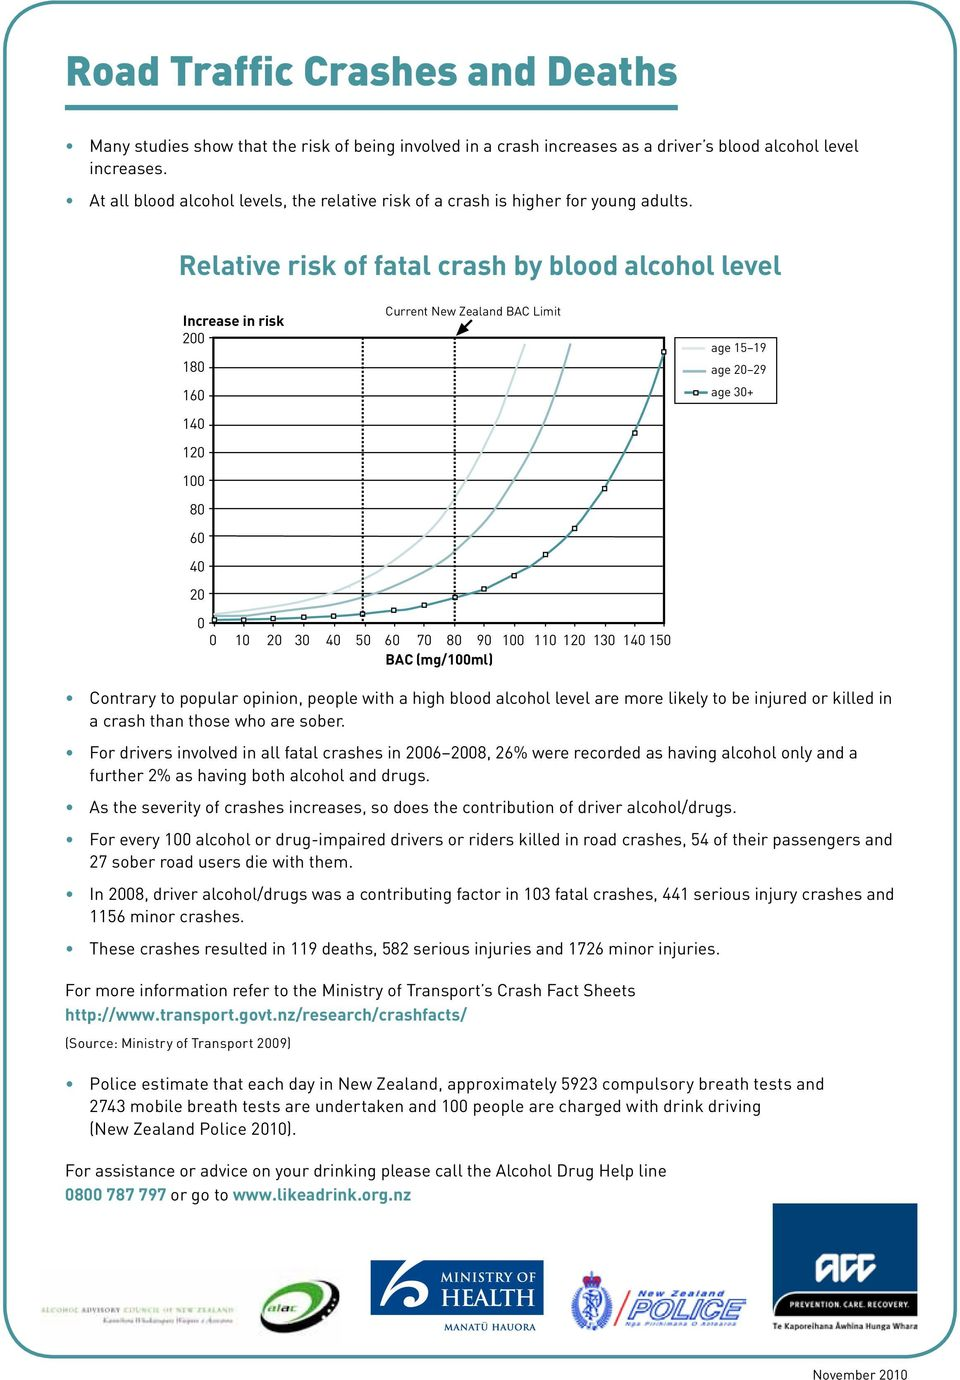 Relative risk of fatal crash by blood alcohol level Current New Zealand BAC Limit Increase in risk 200 180 160 140 120 100 80 60 40 20 0 0 10 20 30 40 50 60 70 80 90 100 110 120 130 140 150 BAC